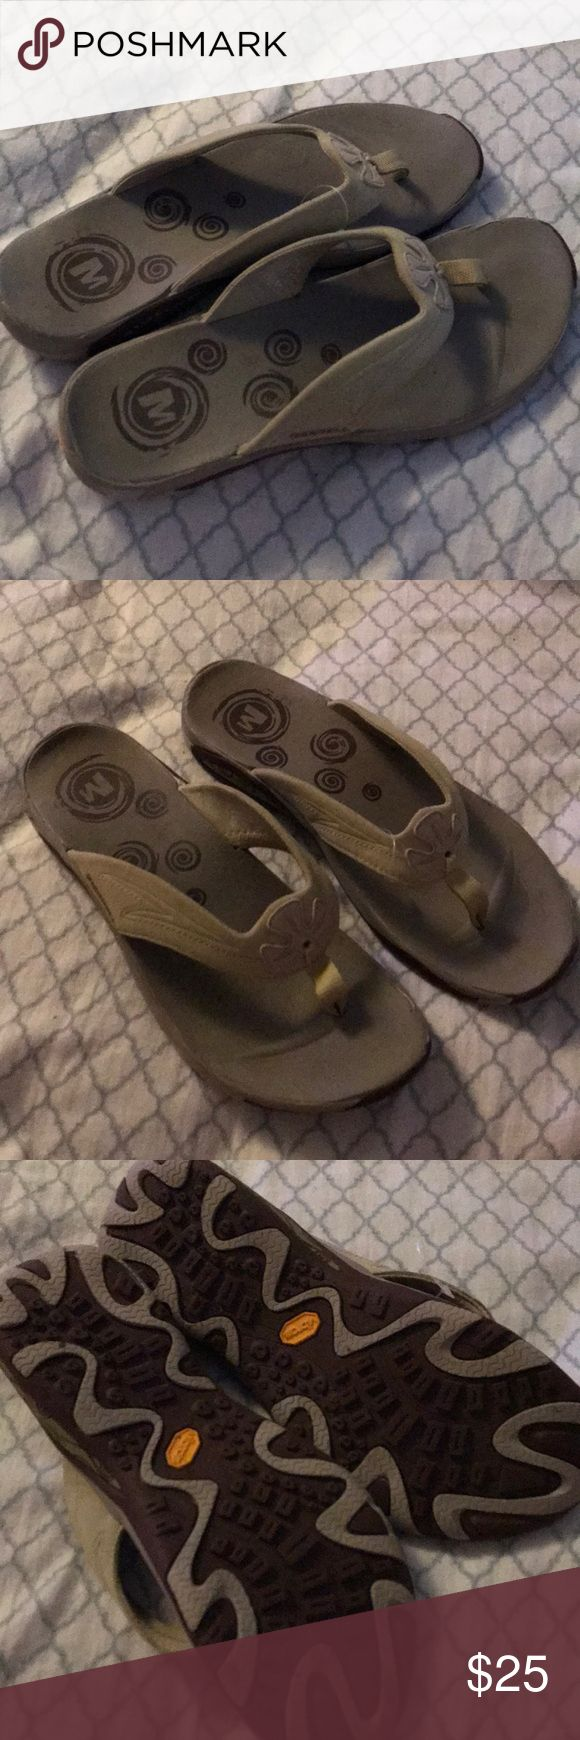 Merrill sandals Worn a few times Merrell Shoes Sandals